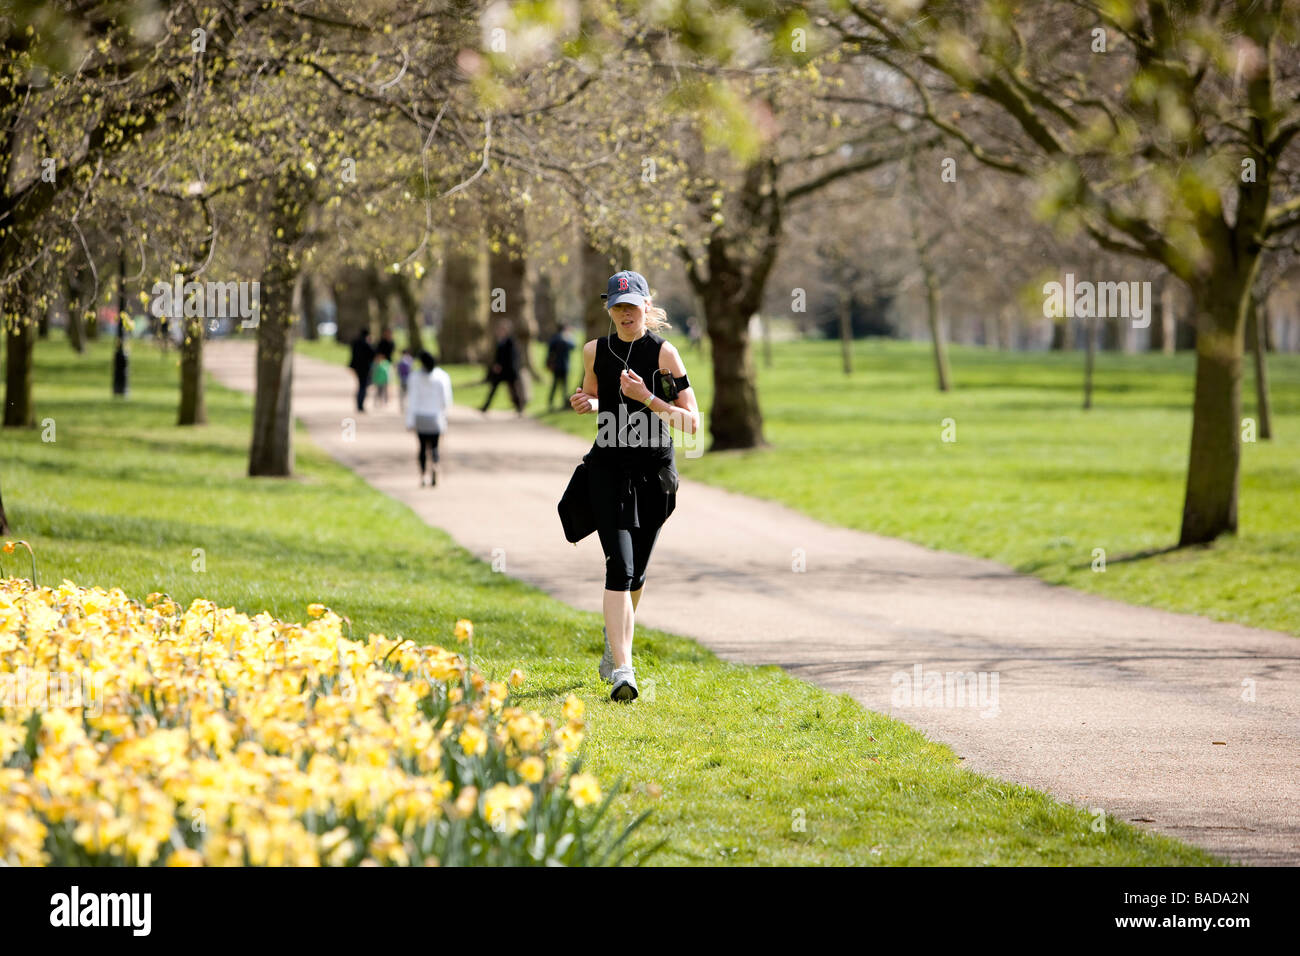 north hyde park milf women Leg technicians and policy makers class mature escorts as girls who are over 35 years of age connecting kensington gardens with hyde park north london, many.